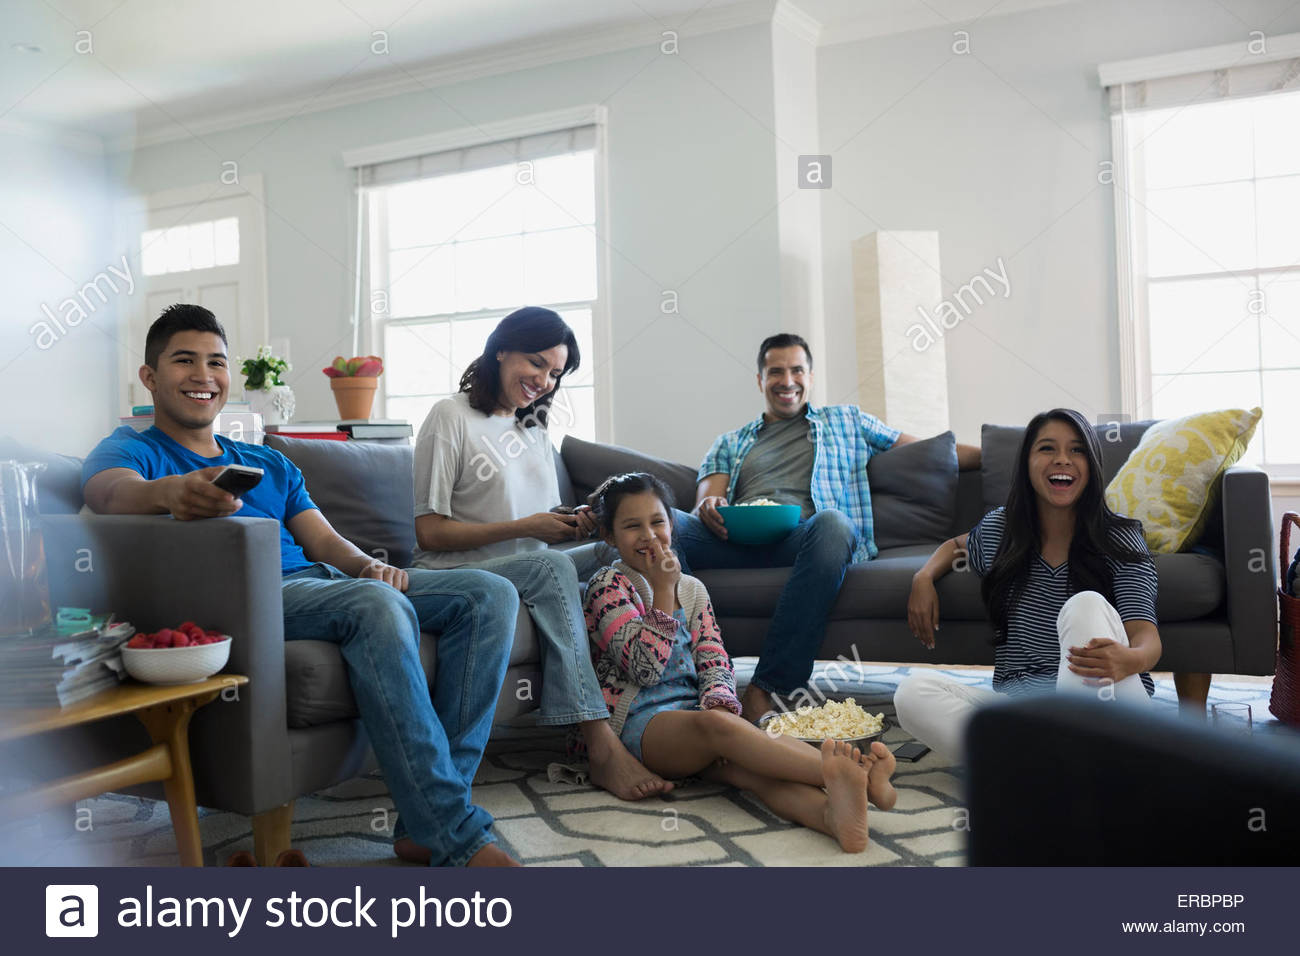 Family watching TV with popcorn in living room - Stock Image